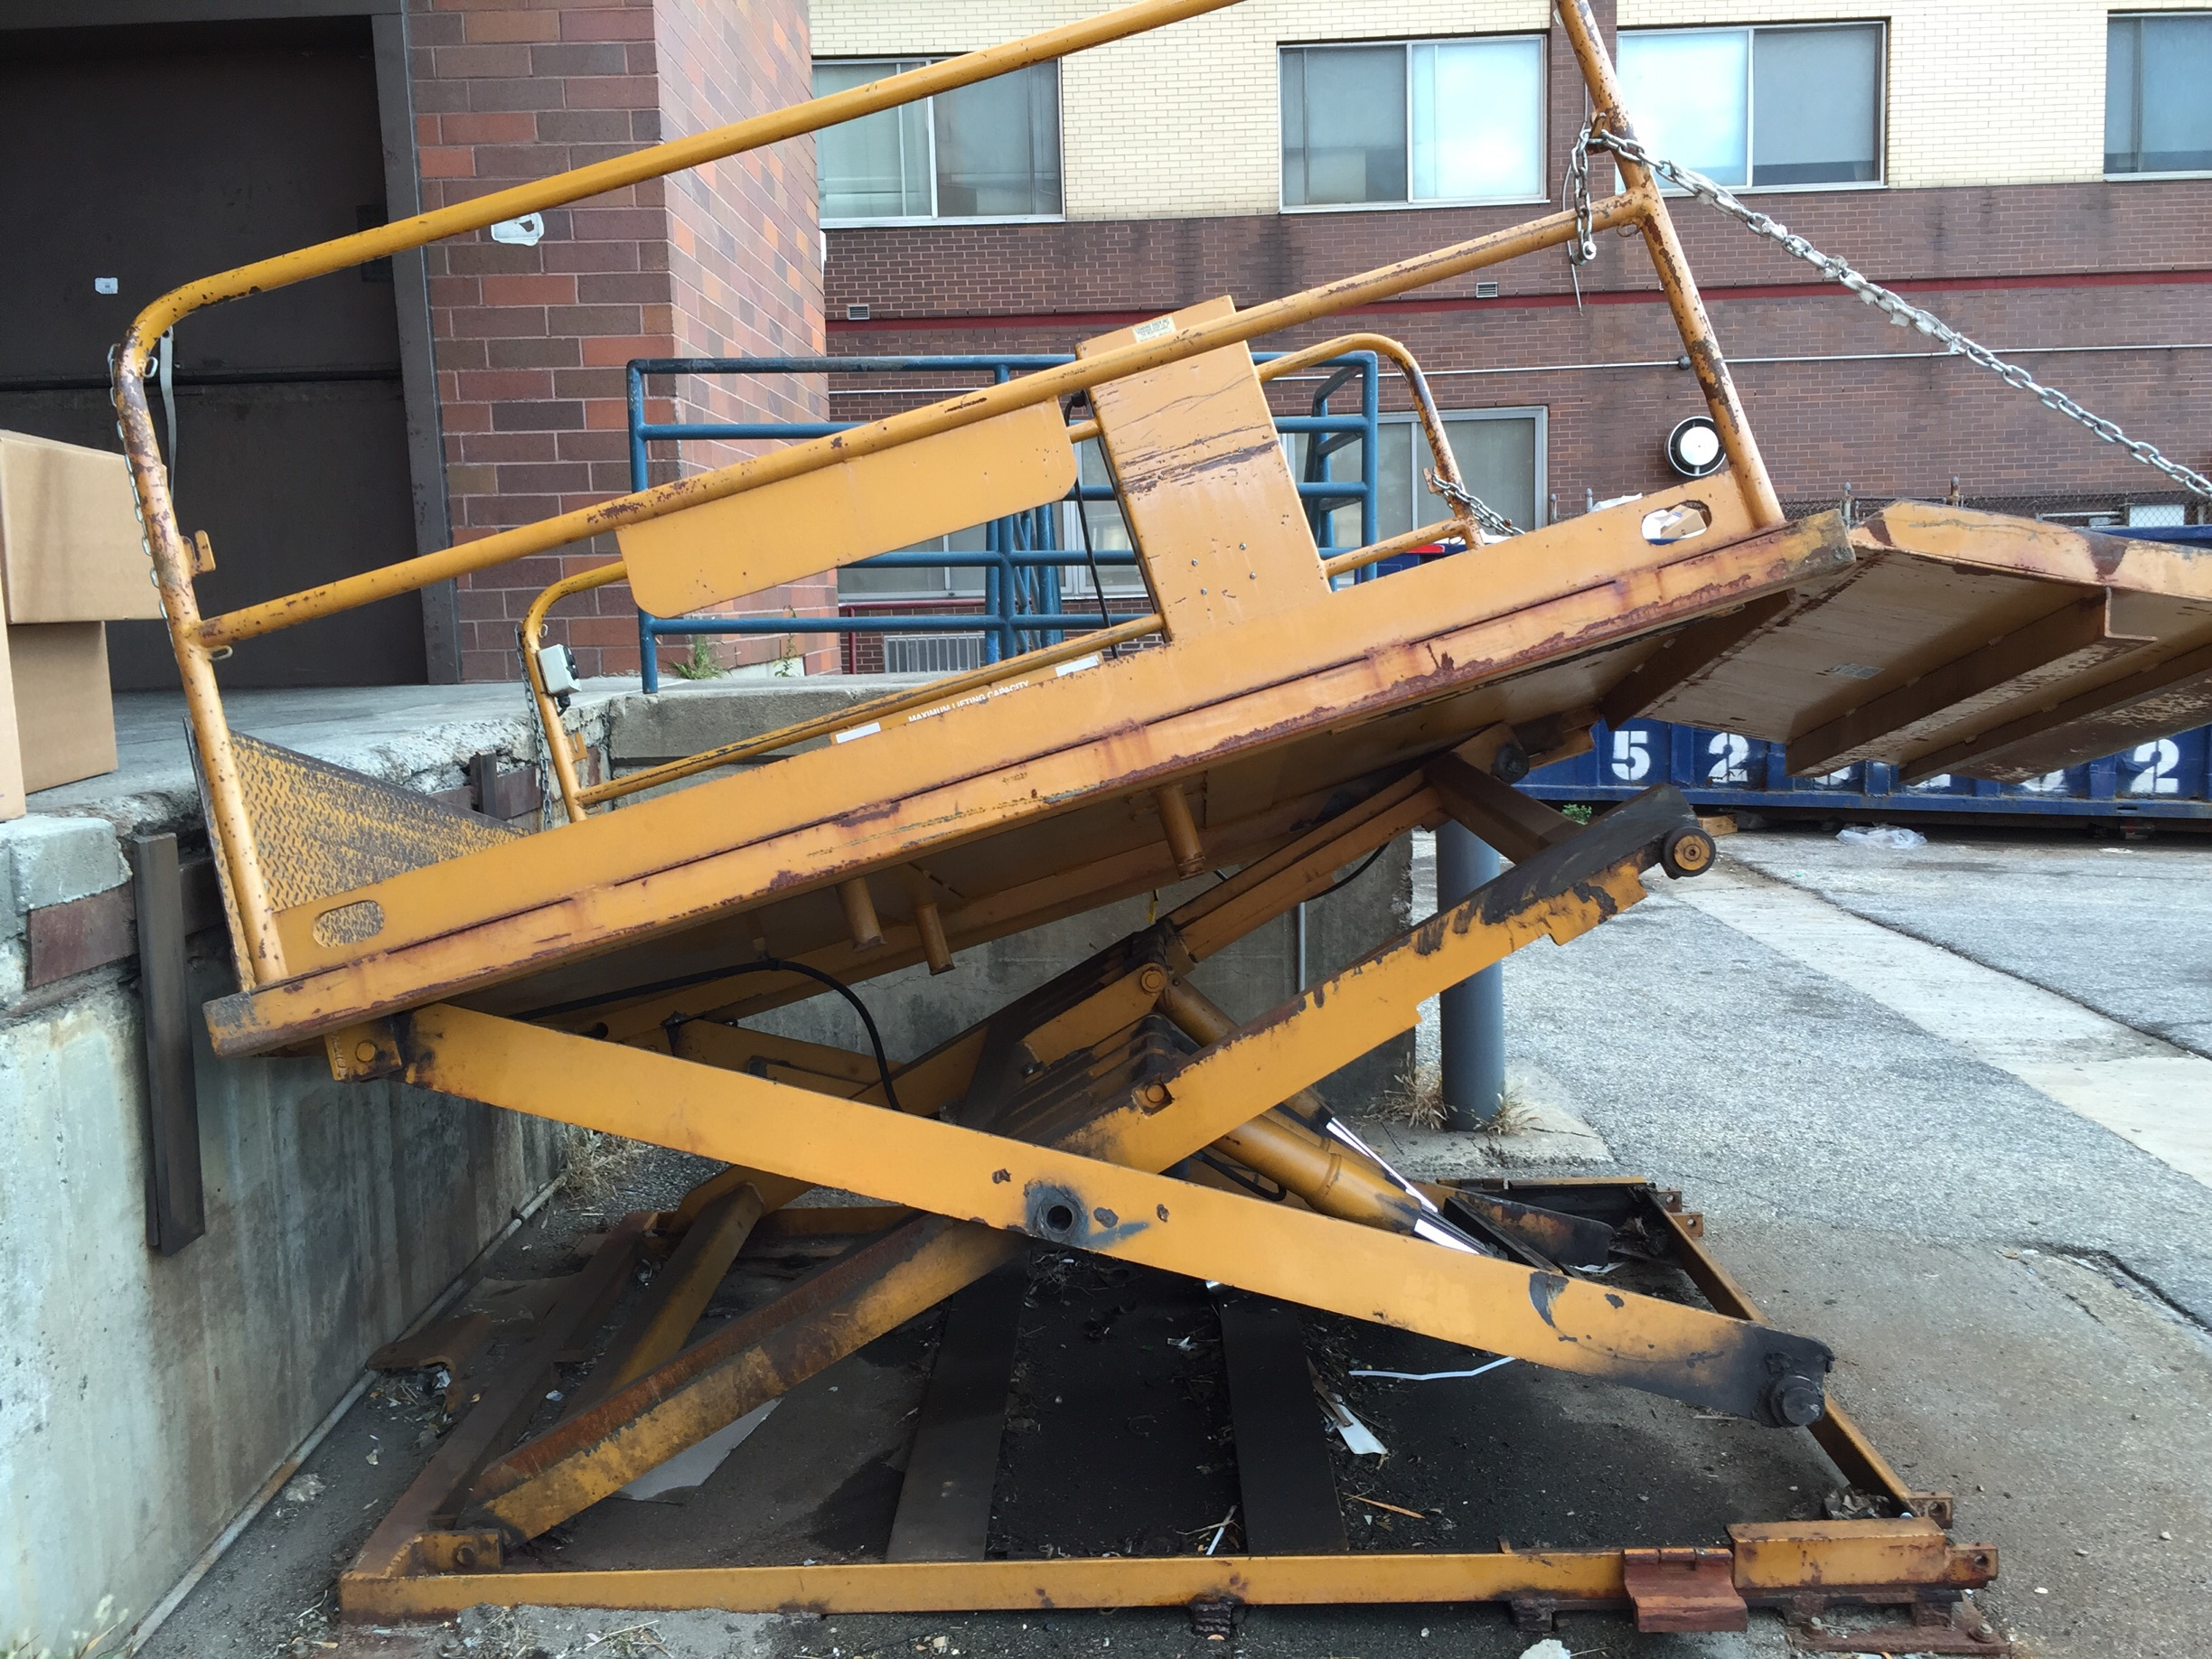 dock_scissor_lift_repair_nyc.jpg